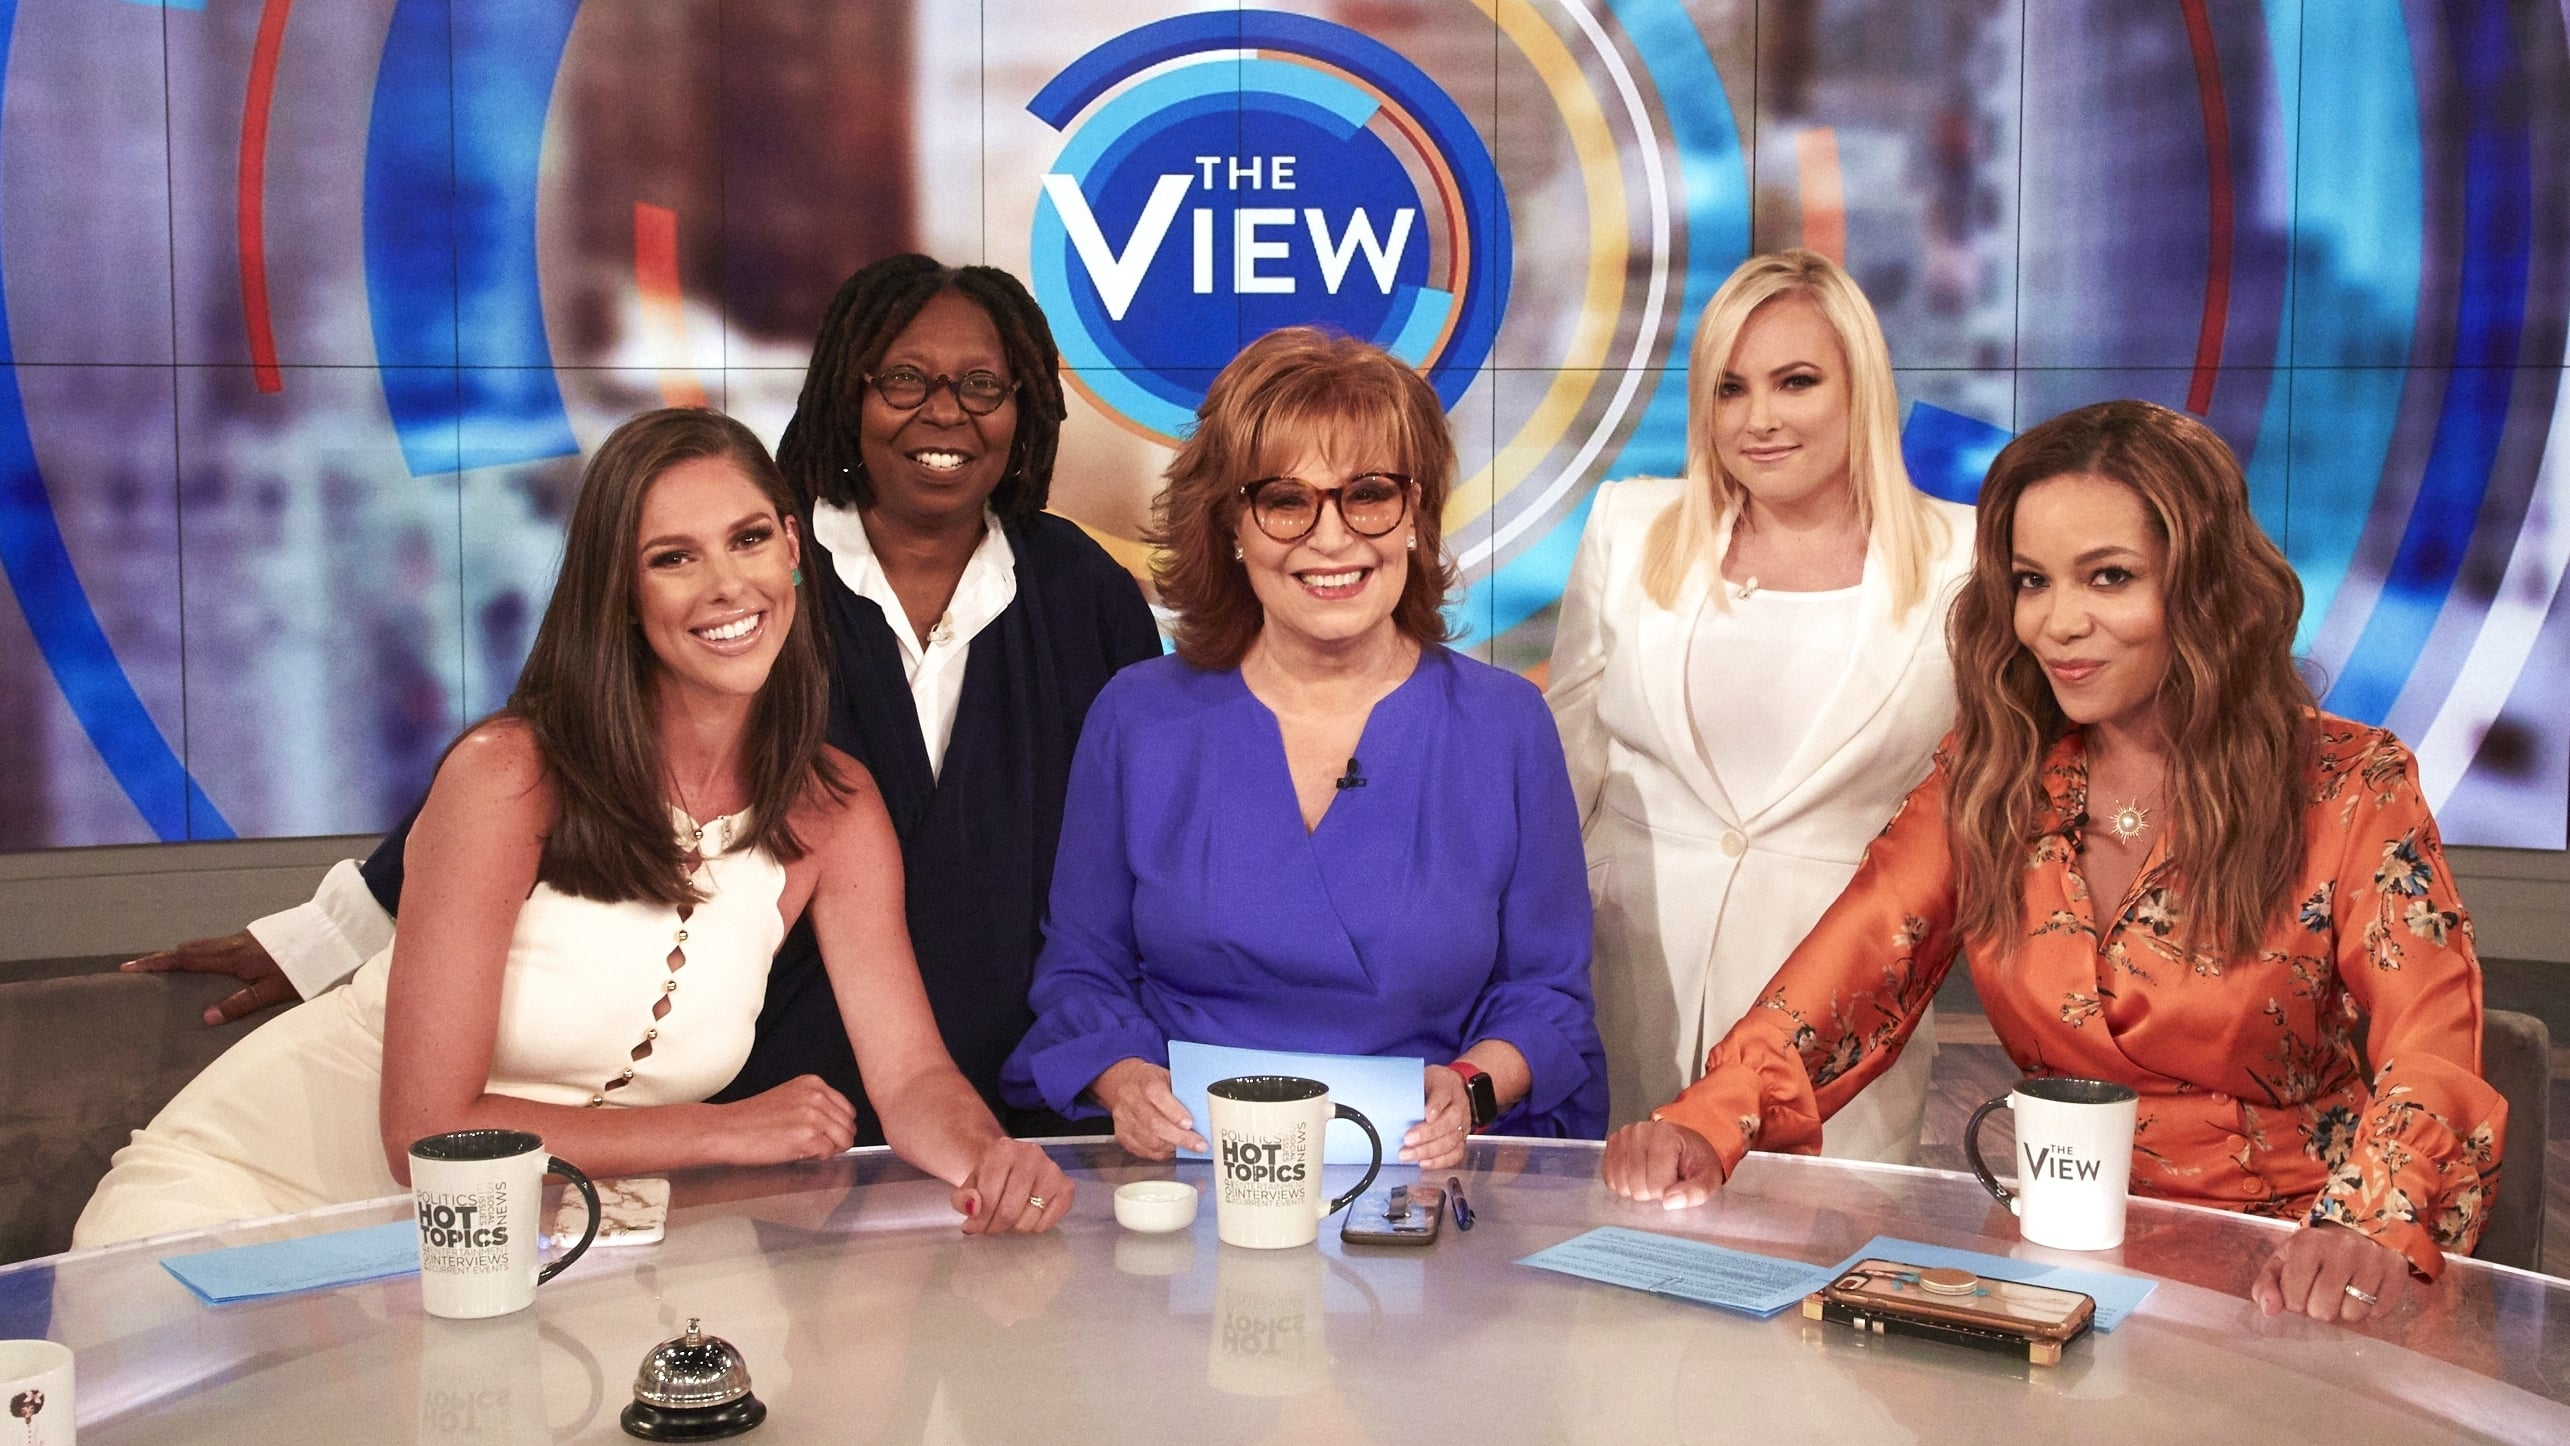 The View - Season 3 Episode 80 : Season 3, Episode 80